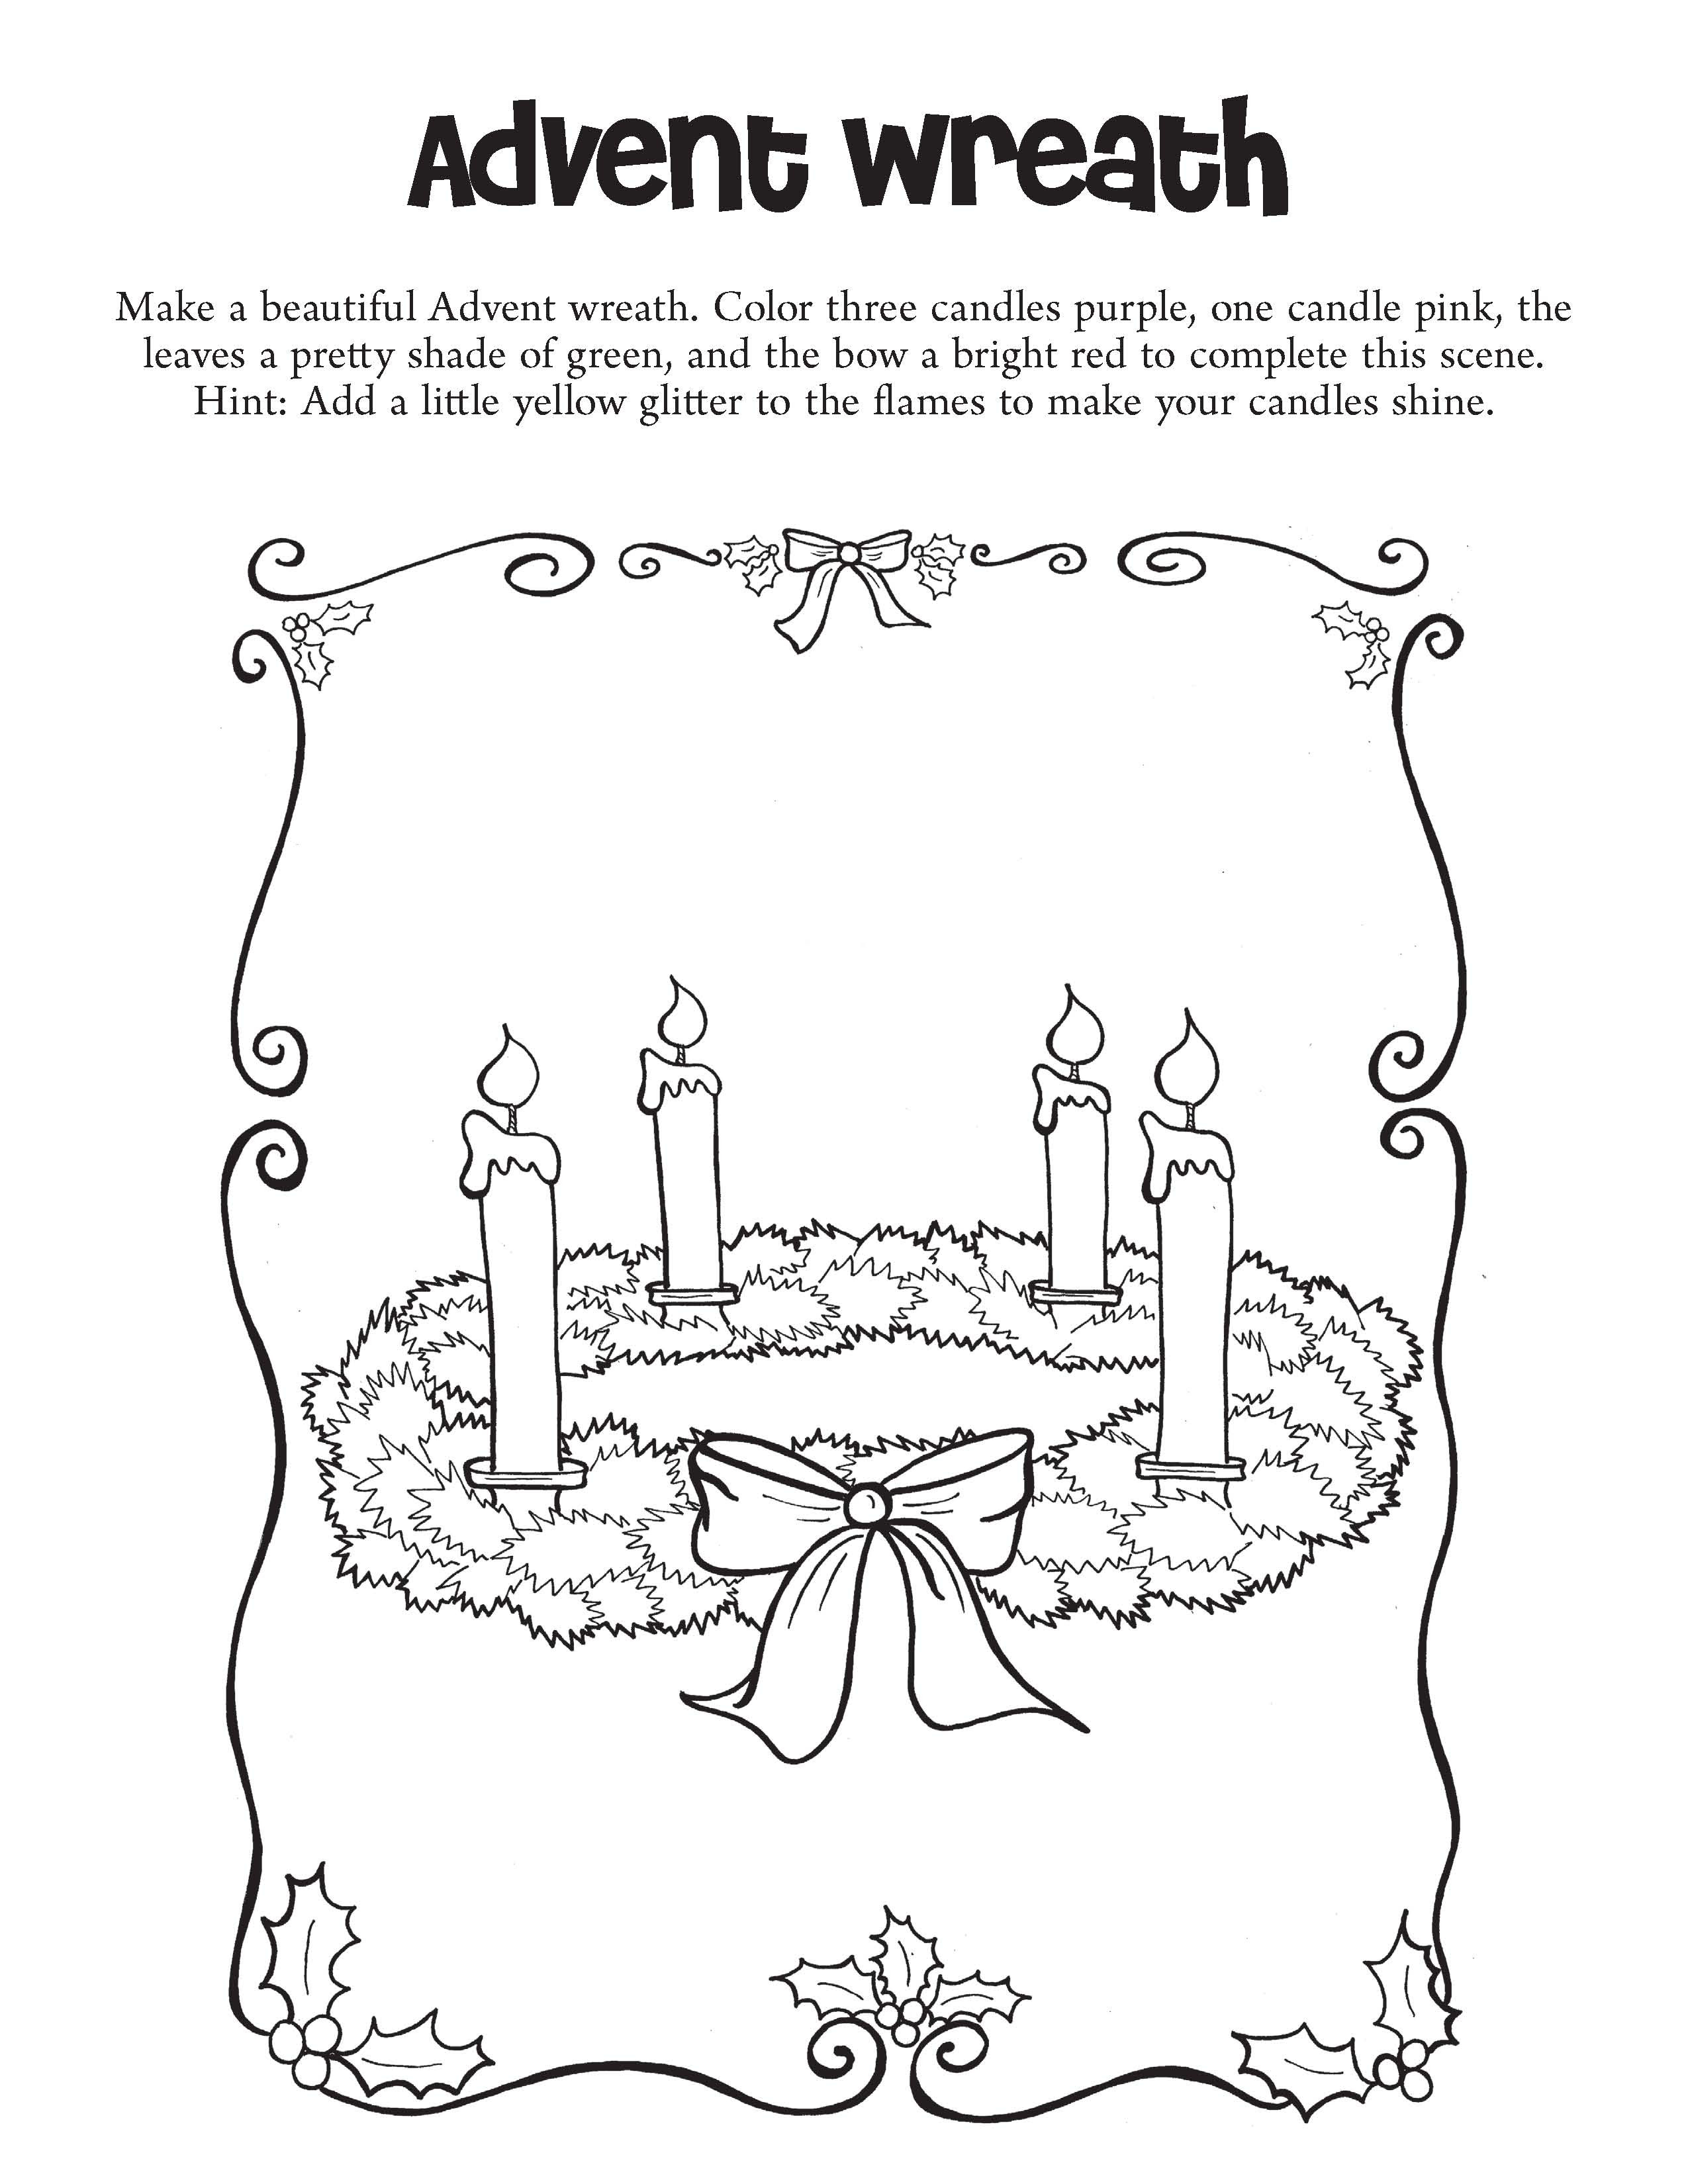 Best ideas about Catholic Christmas Coloring Pages For Kids . Save or Pin Advent Wreath Coloring Page Pages For grig3 Now.